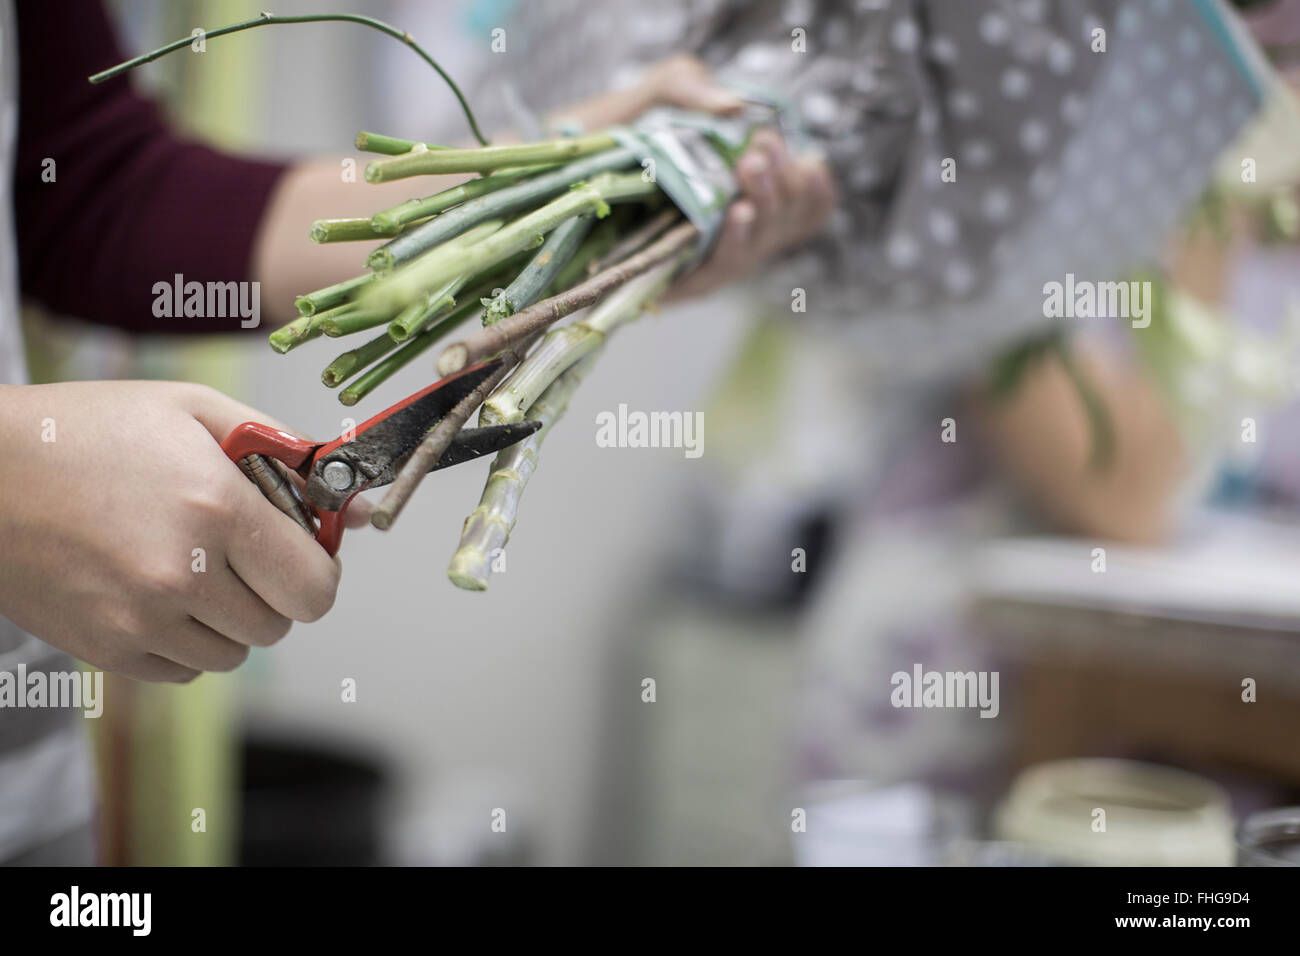 Florist cutting flower stems Stock Photo